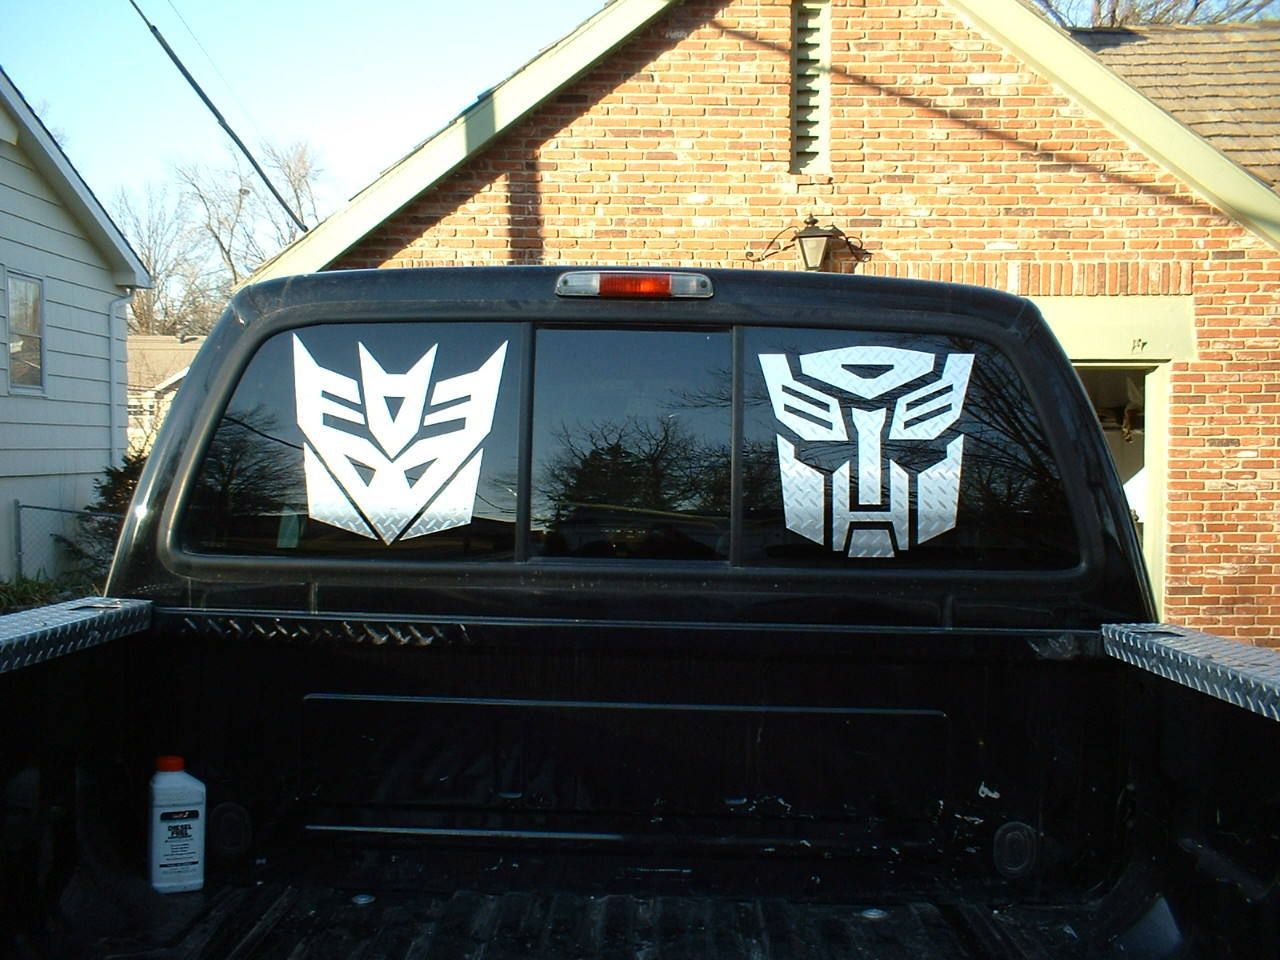 CUSTOM DECALS And CUSTOM STICKERS - Spongebob decals for cars